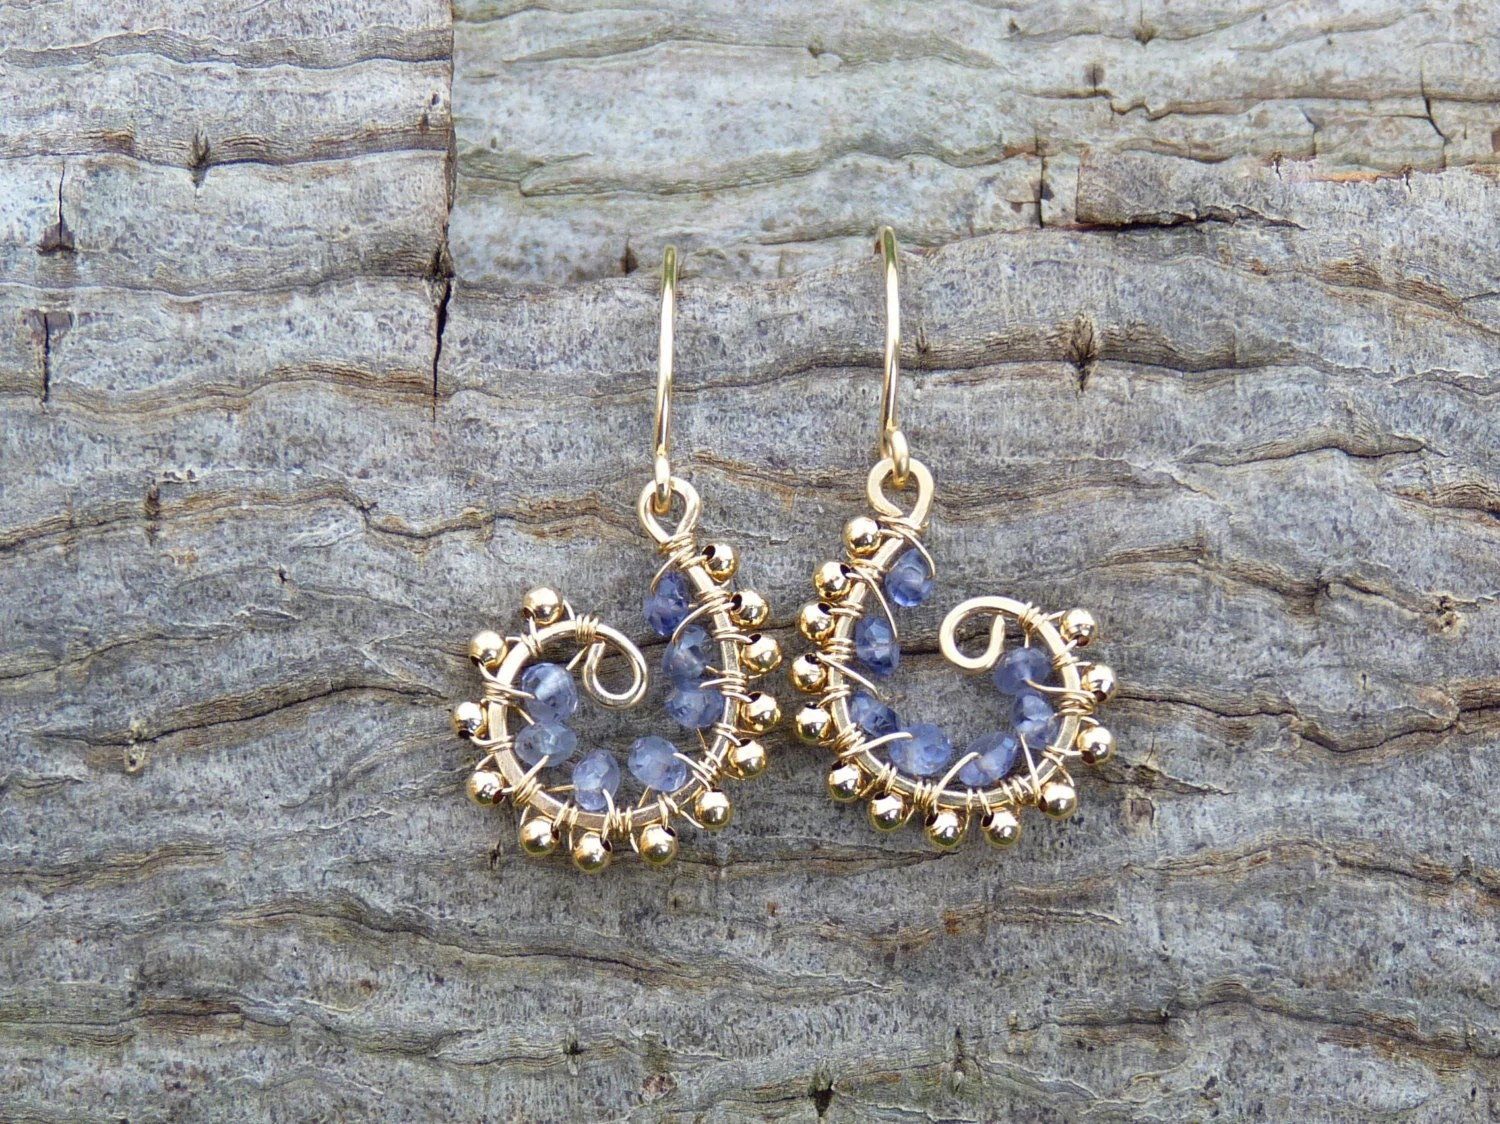 iolite and 14k gold filled swirl earrings - iolite earrings - gold earrings - wire wrapped earrings - handmade - artisan - handmade jewelry - Leoben